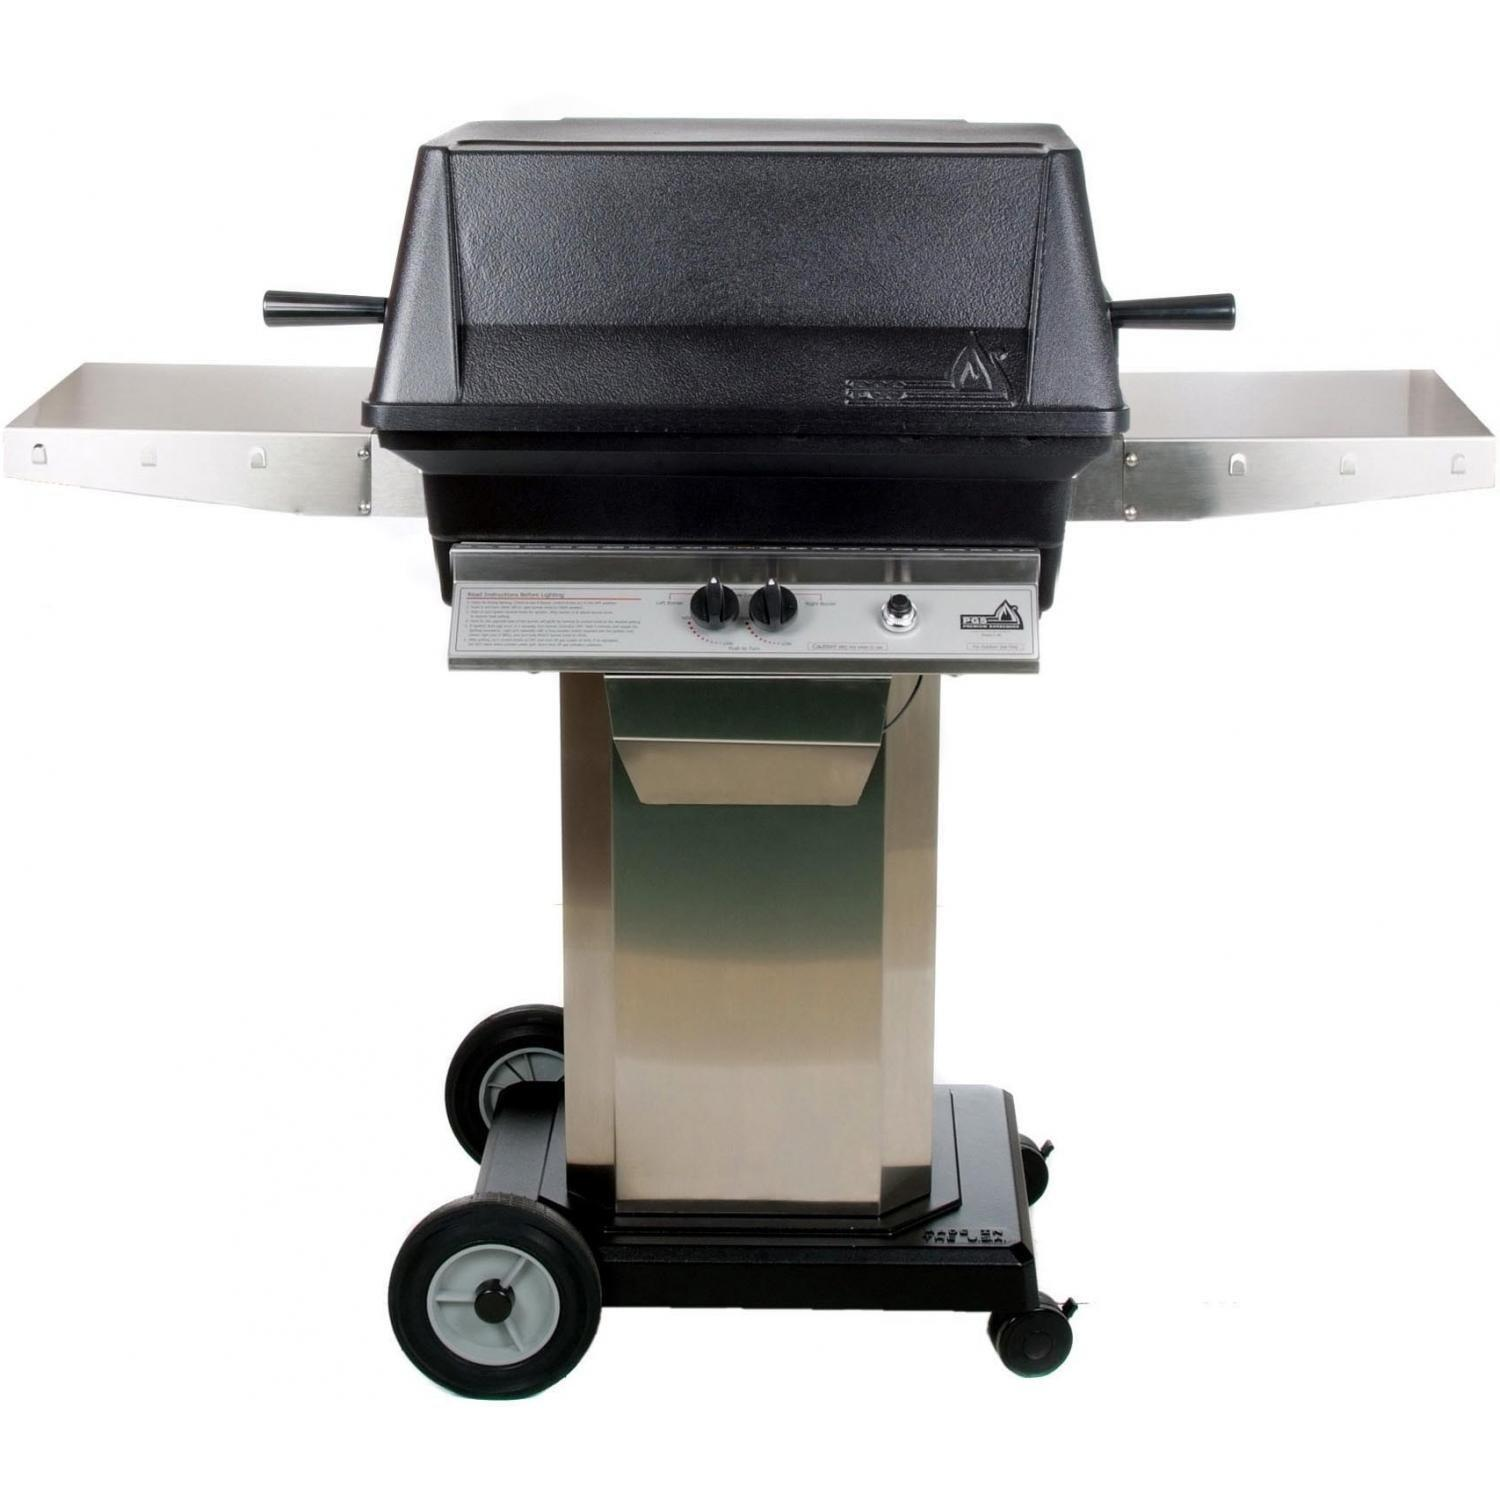 Pgs a cast aluminum propane gas grill stainless steel